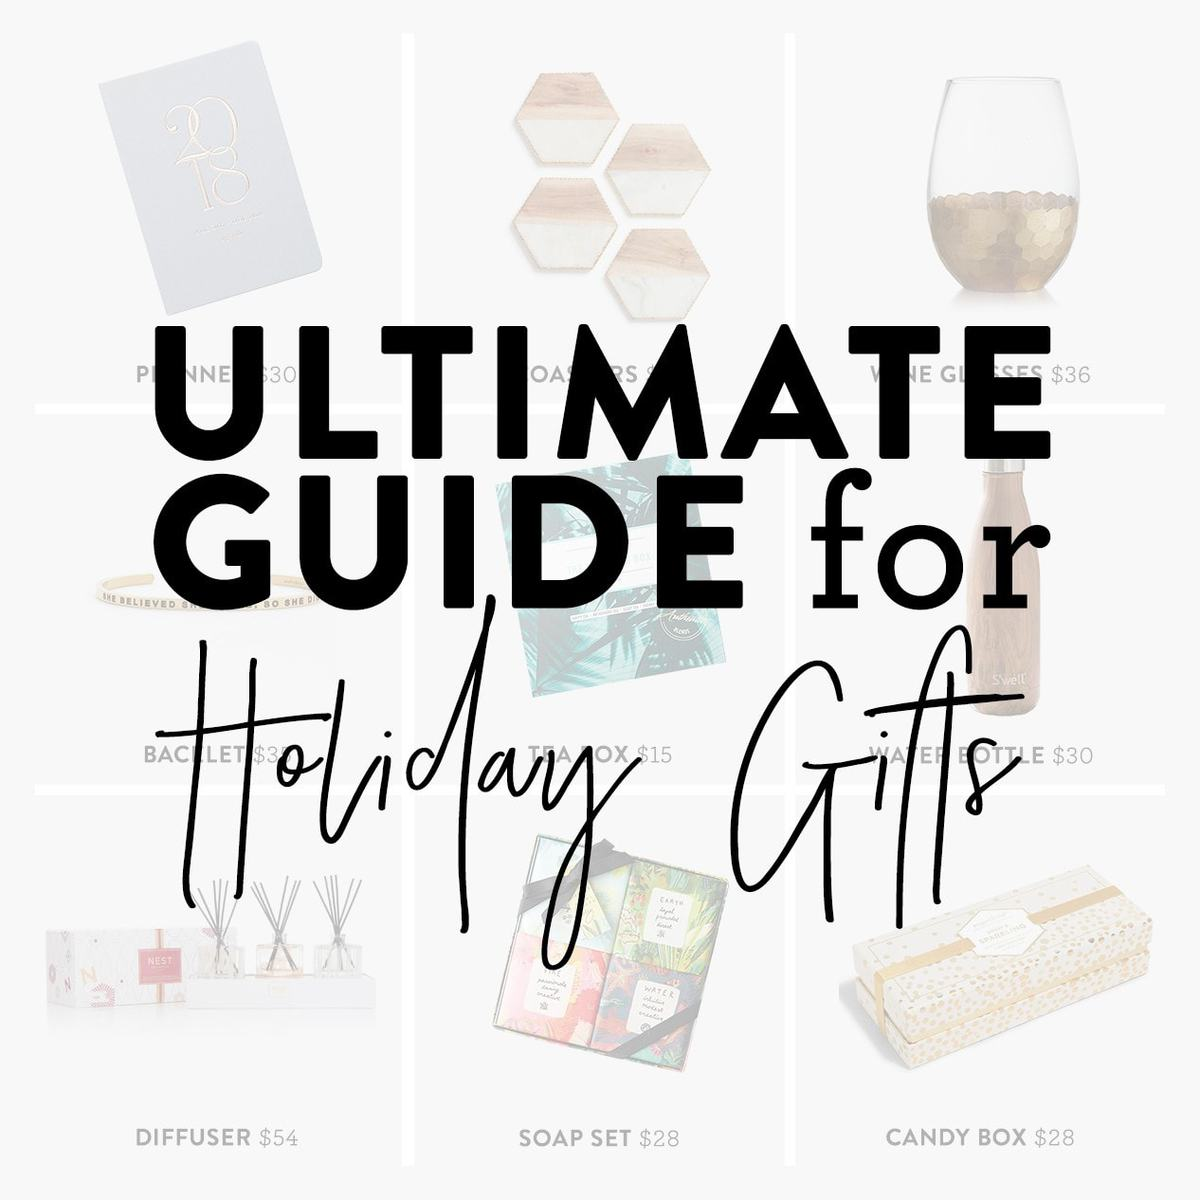 Need help with some gift-giving inspiration? We created The Ultimate Guide for Holiday Gift Ideas for the moms, sisters, coworkers, boyfriends, etc. in your life! #giftguide #holiday #shopping